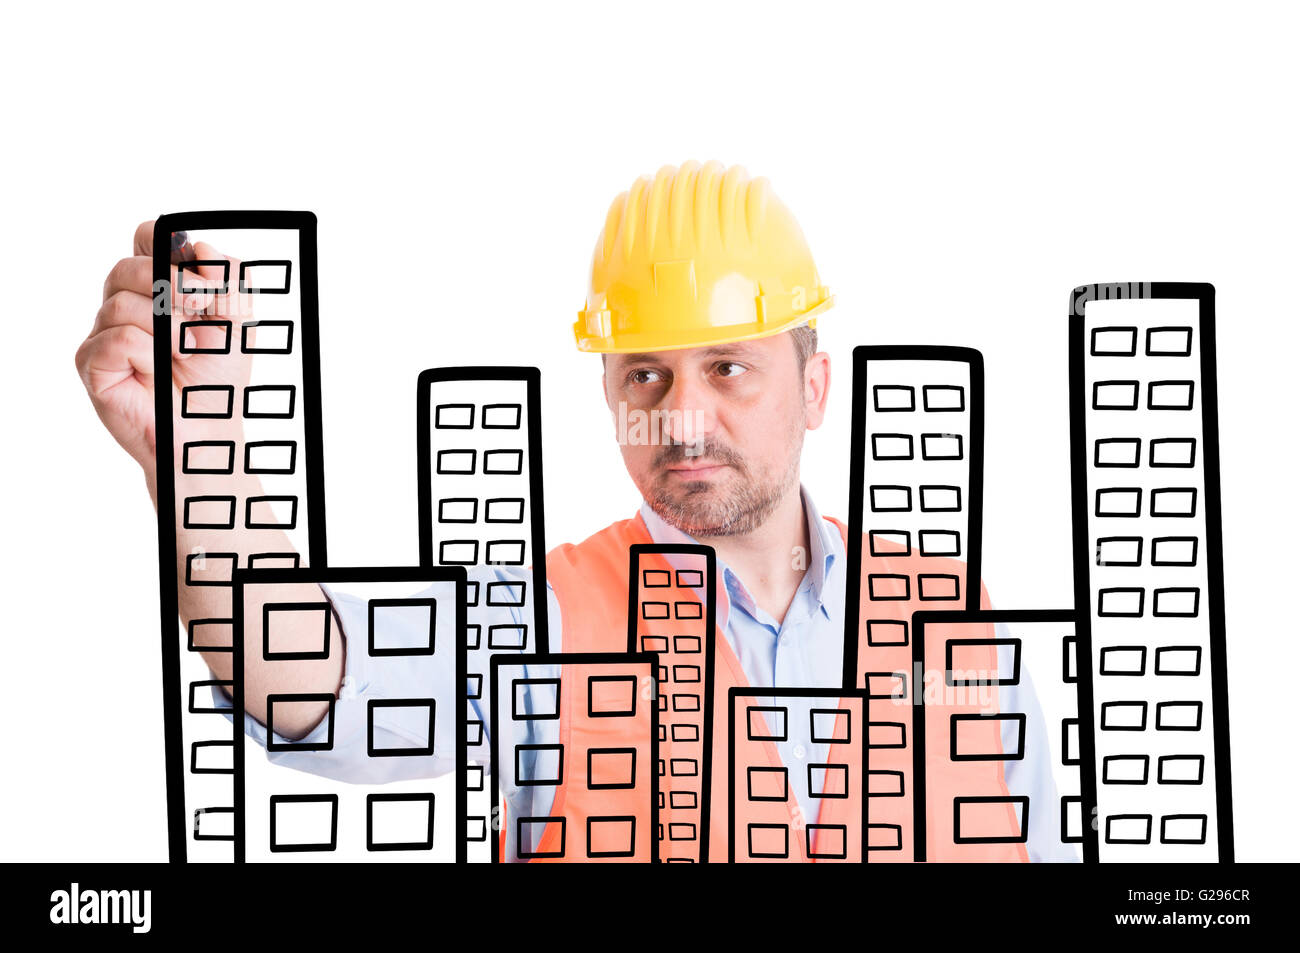 Captivating Architect Or Builder Drawing Buildings With Marker On Transparent Screen Or  Wipe Board